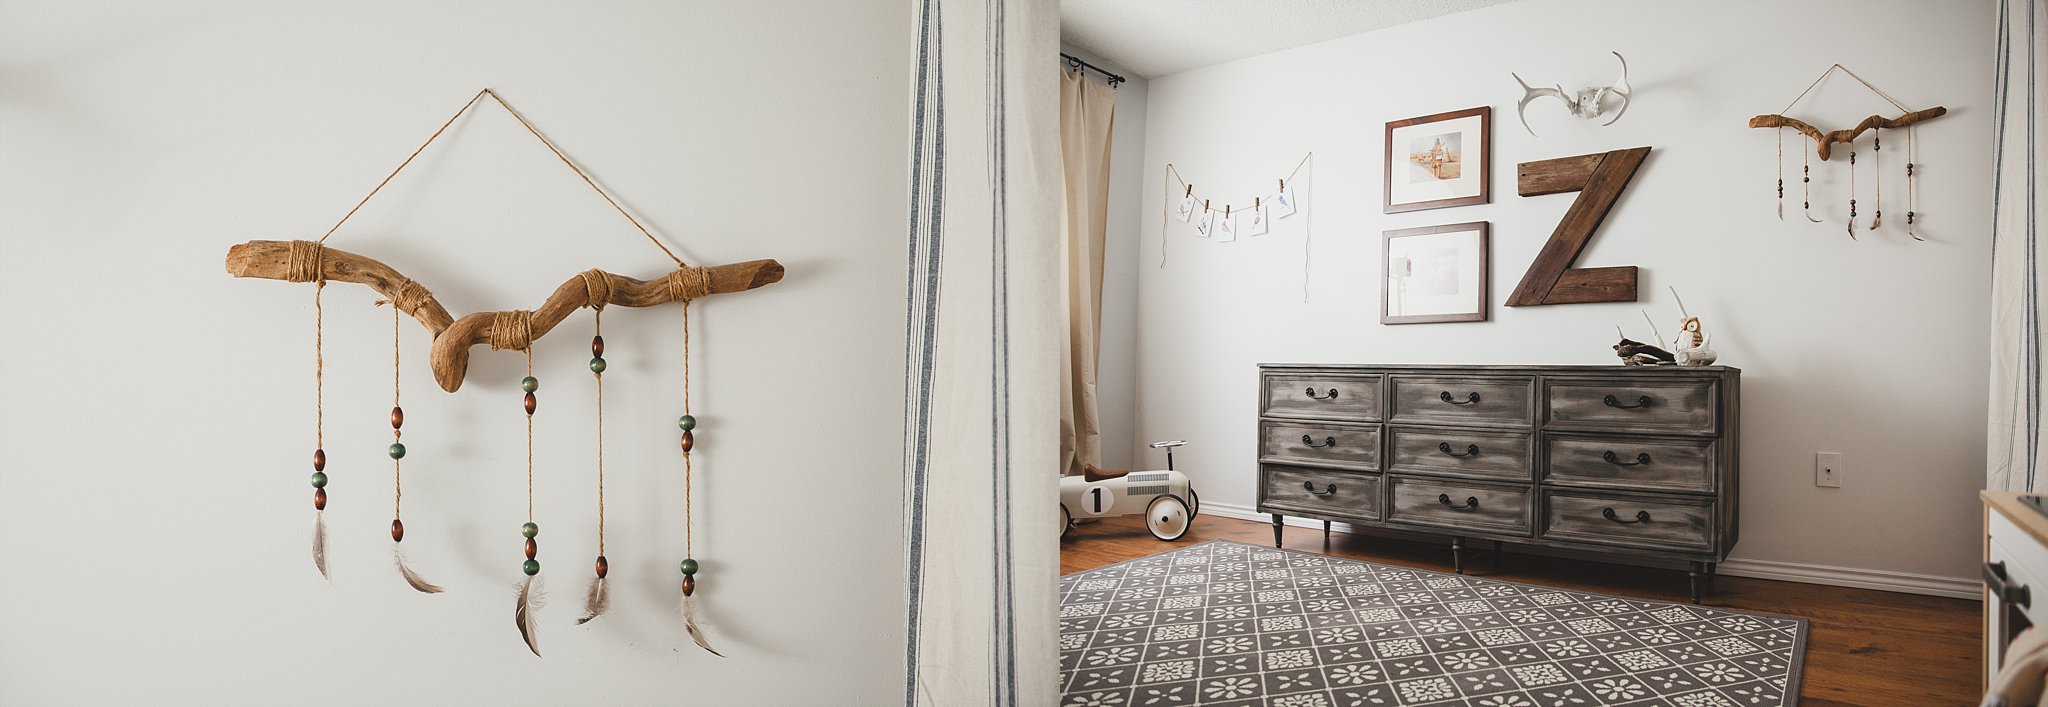 Modern styled nursery with macrame and feather hanging art. Photographed by Rachael Little Photography in Woodstock, Ontario.